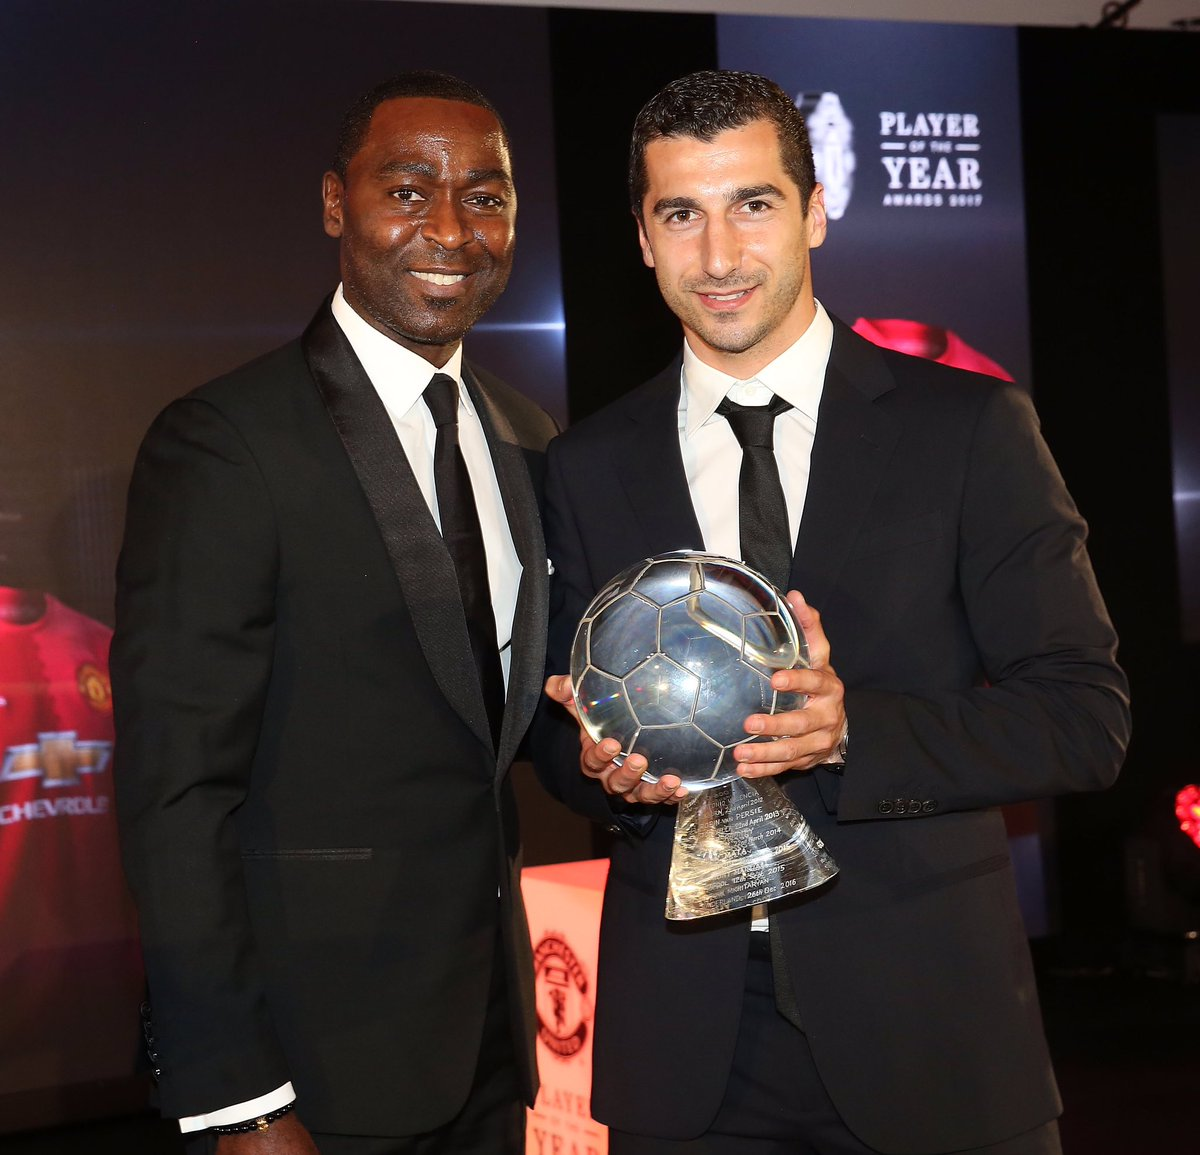 Honoured to win this award ⚽️🦂 #MUFCPOTY Goal of the season @vancole9